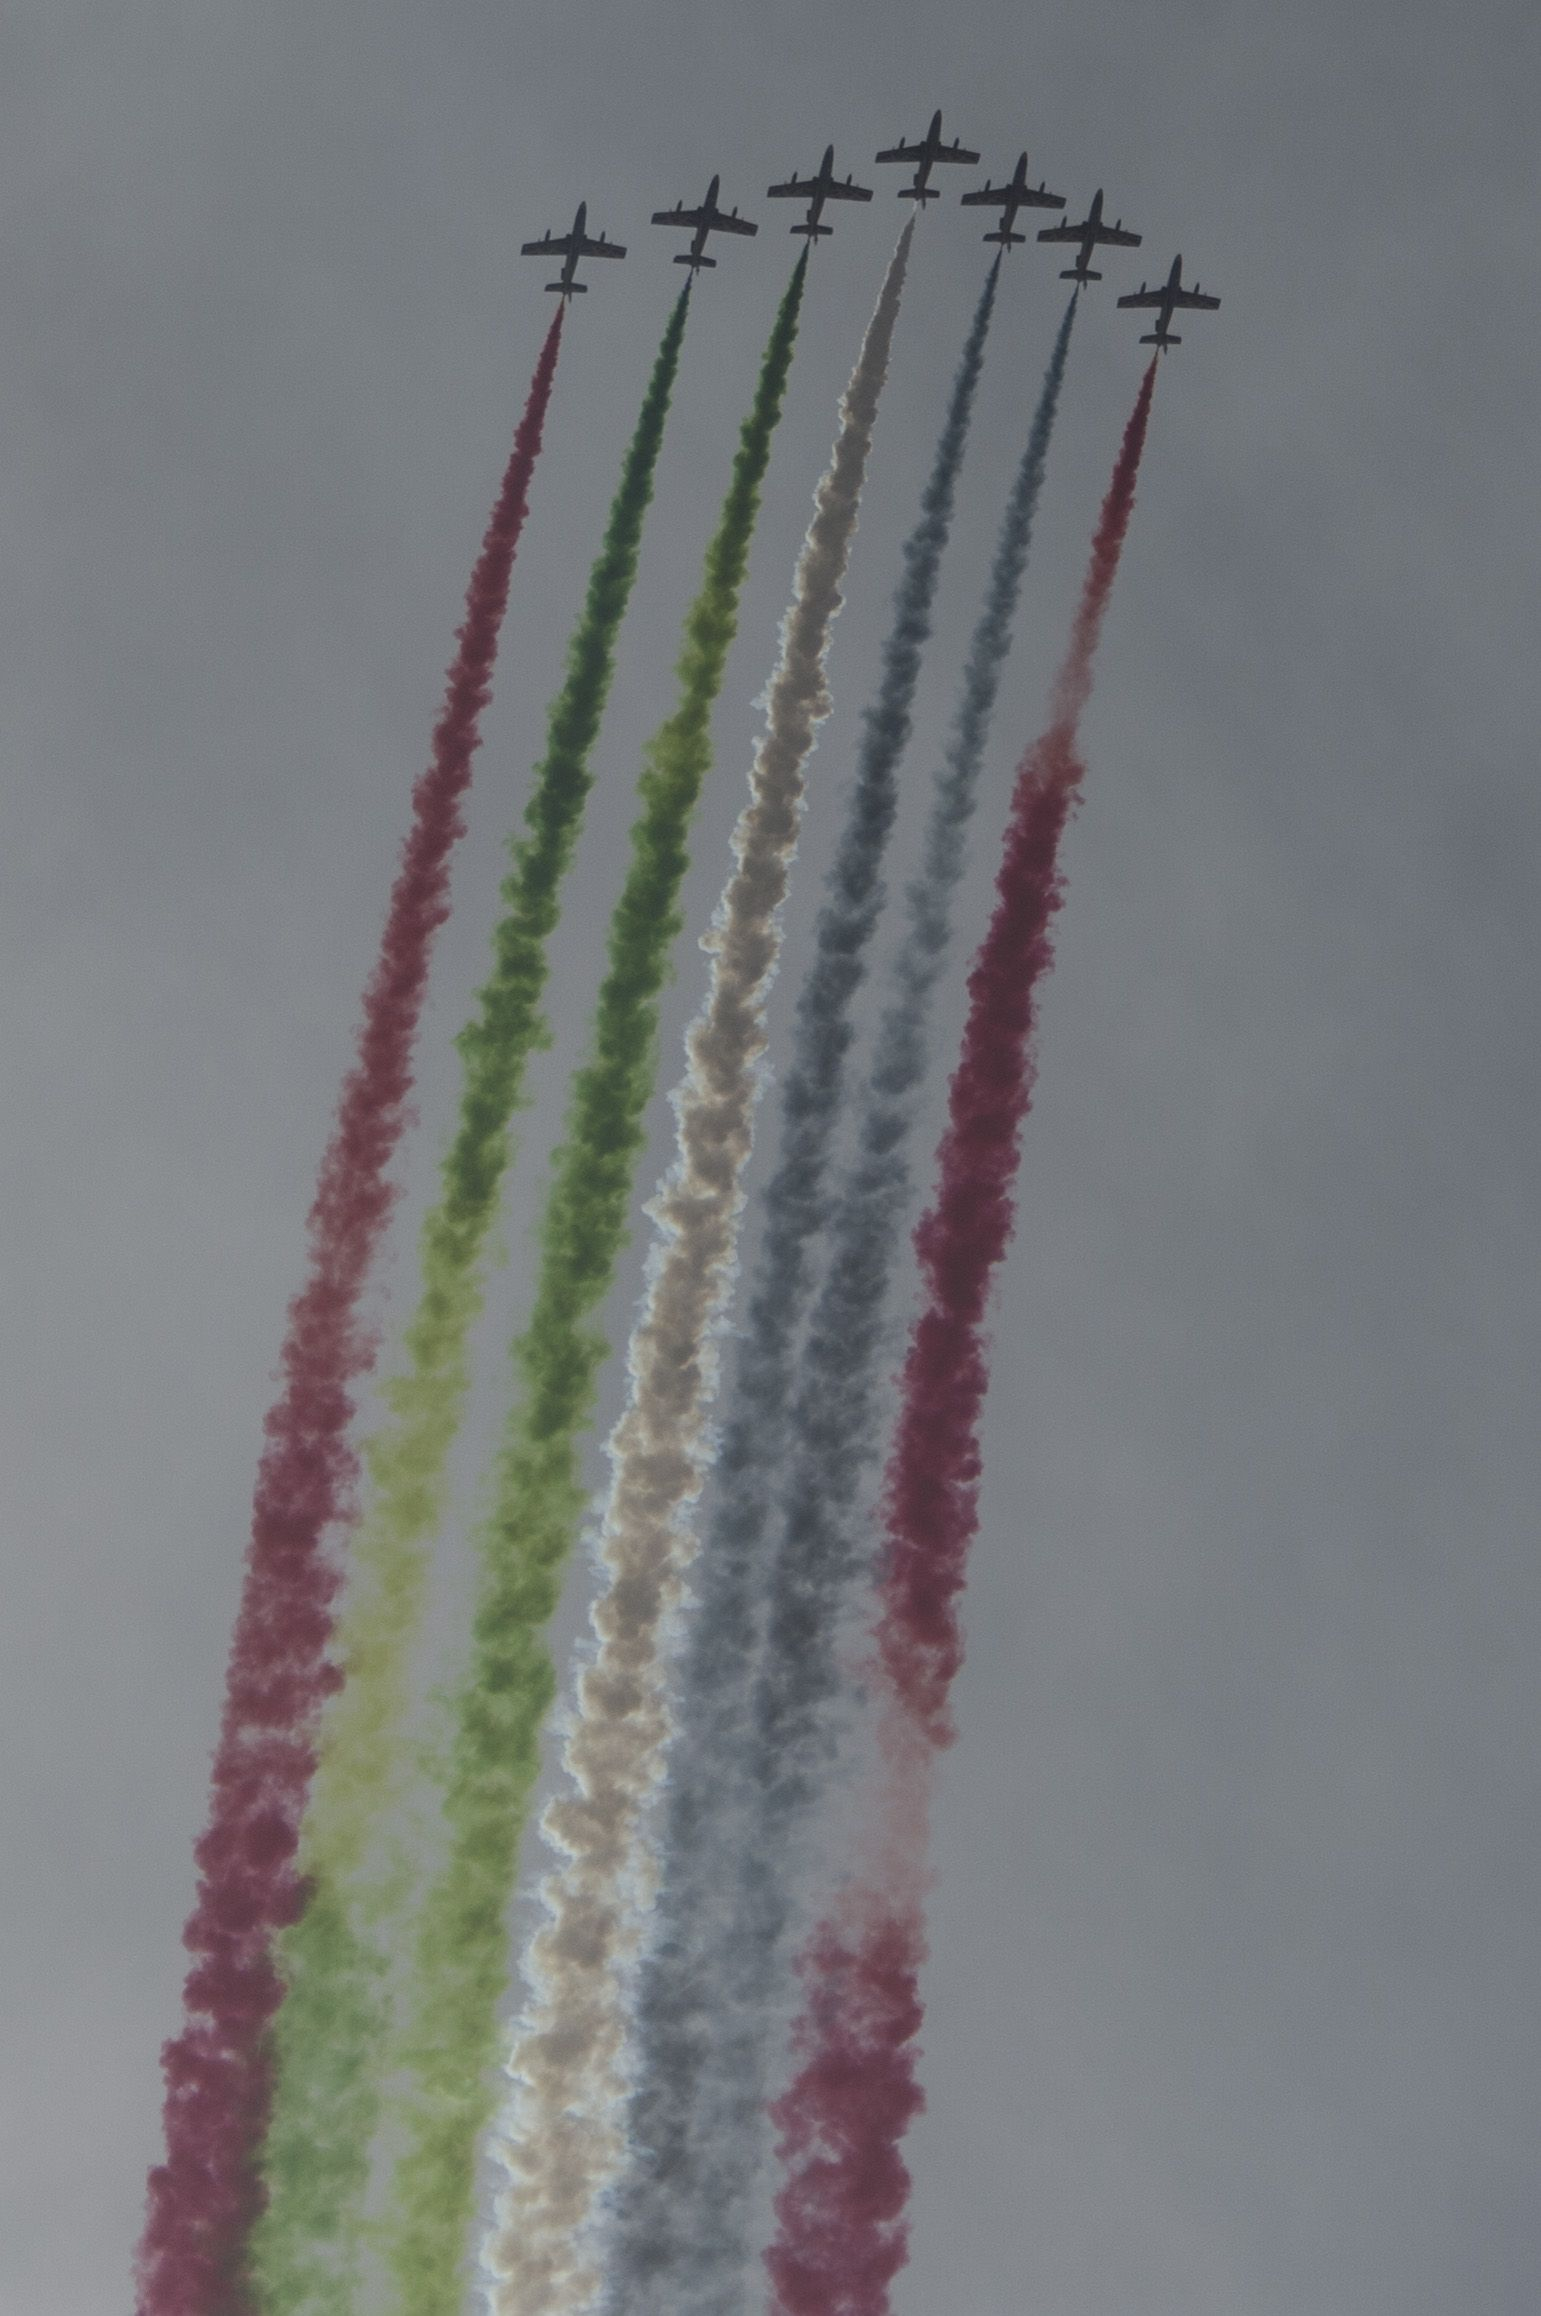 The United Arab Emirates Air Force Al Fursan demonstration team perform at the Bahrain International Airshow at Sakhir Airbase in Manama, Bahrain, Jan. 22, 2016. The Al Fursan planes are painted in black, gold, white, red and green colors and are equipped with smoke generators producing red, green, white and black smoke which are their national flag colors. (U.S. Air Force photo by Staff Sgt. Corey Hook/Released)